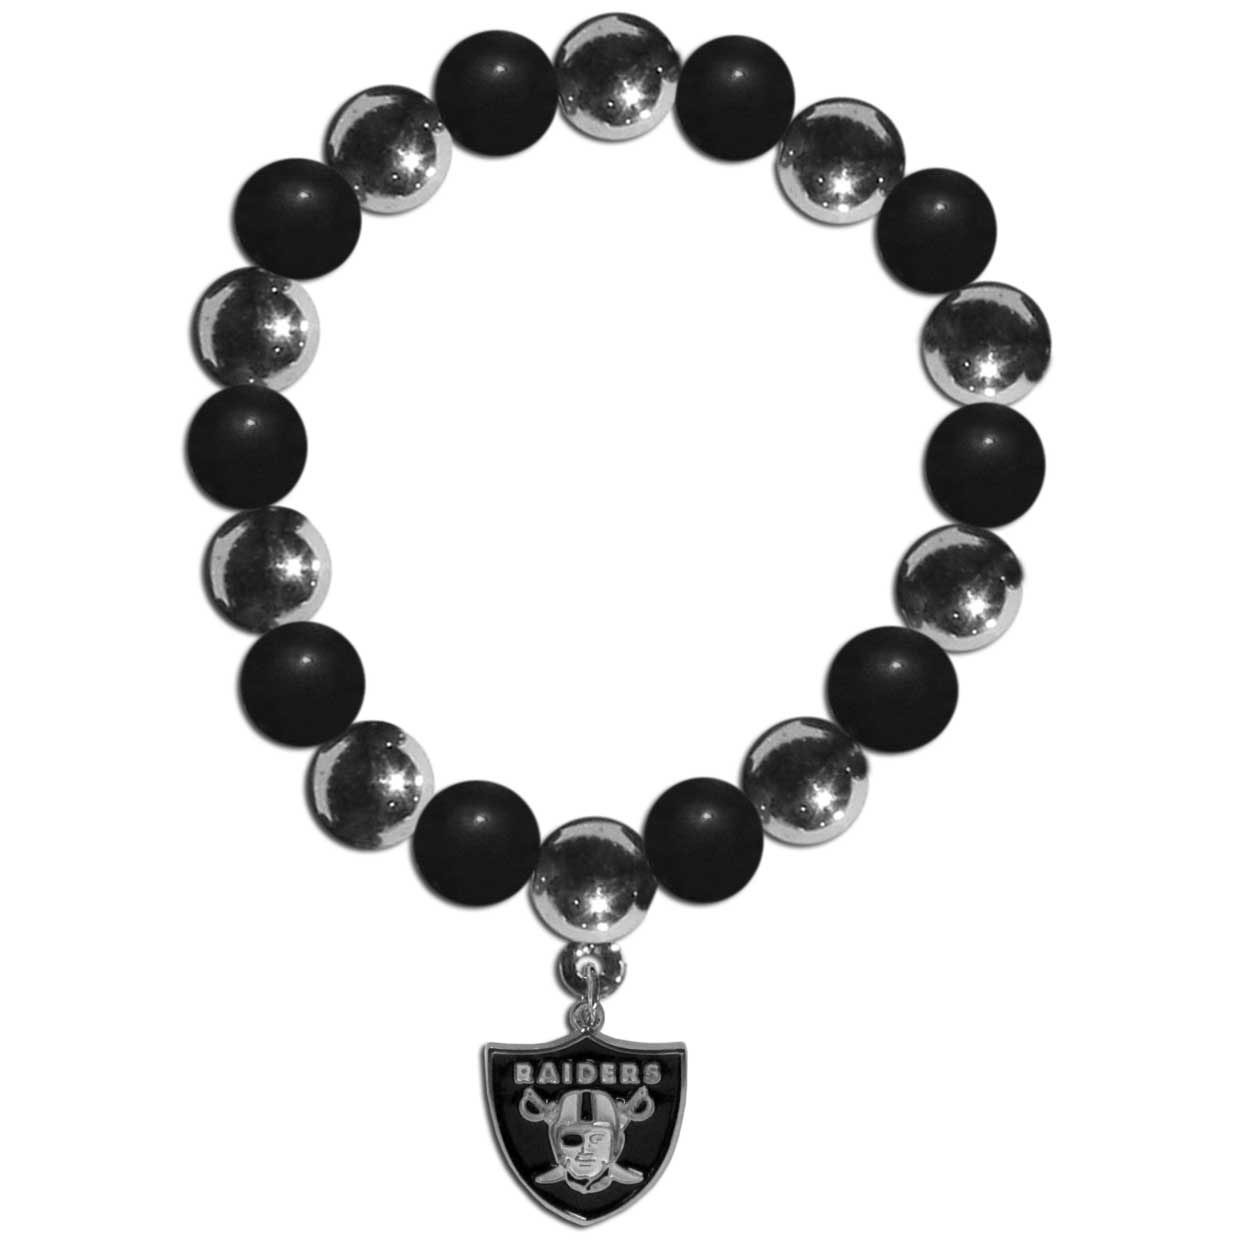 Oakland Raiders Chrome Bead Bracelet - Flash your Oakland Raiders spirit with this bright stretch bracelet. This new bracelet features alternating charm & team beads on stretch cord with a nickel-free enameled chrome team charm. This bracelet adds the perfect pop of color to your game day accessories.